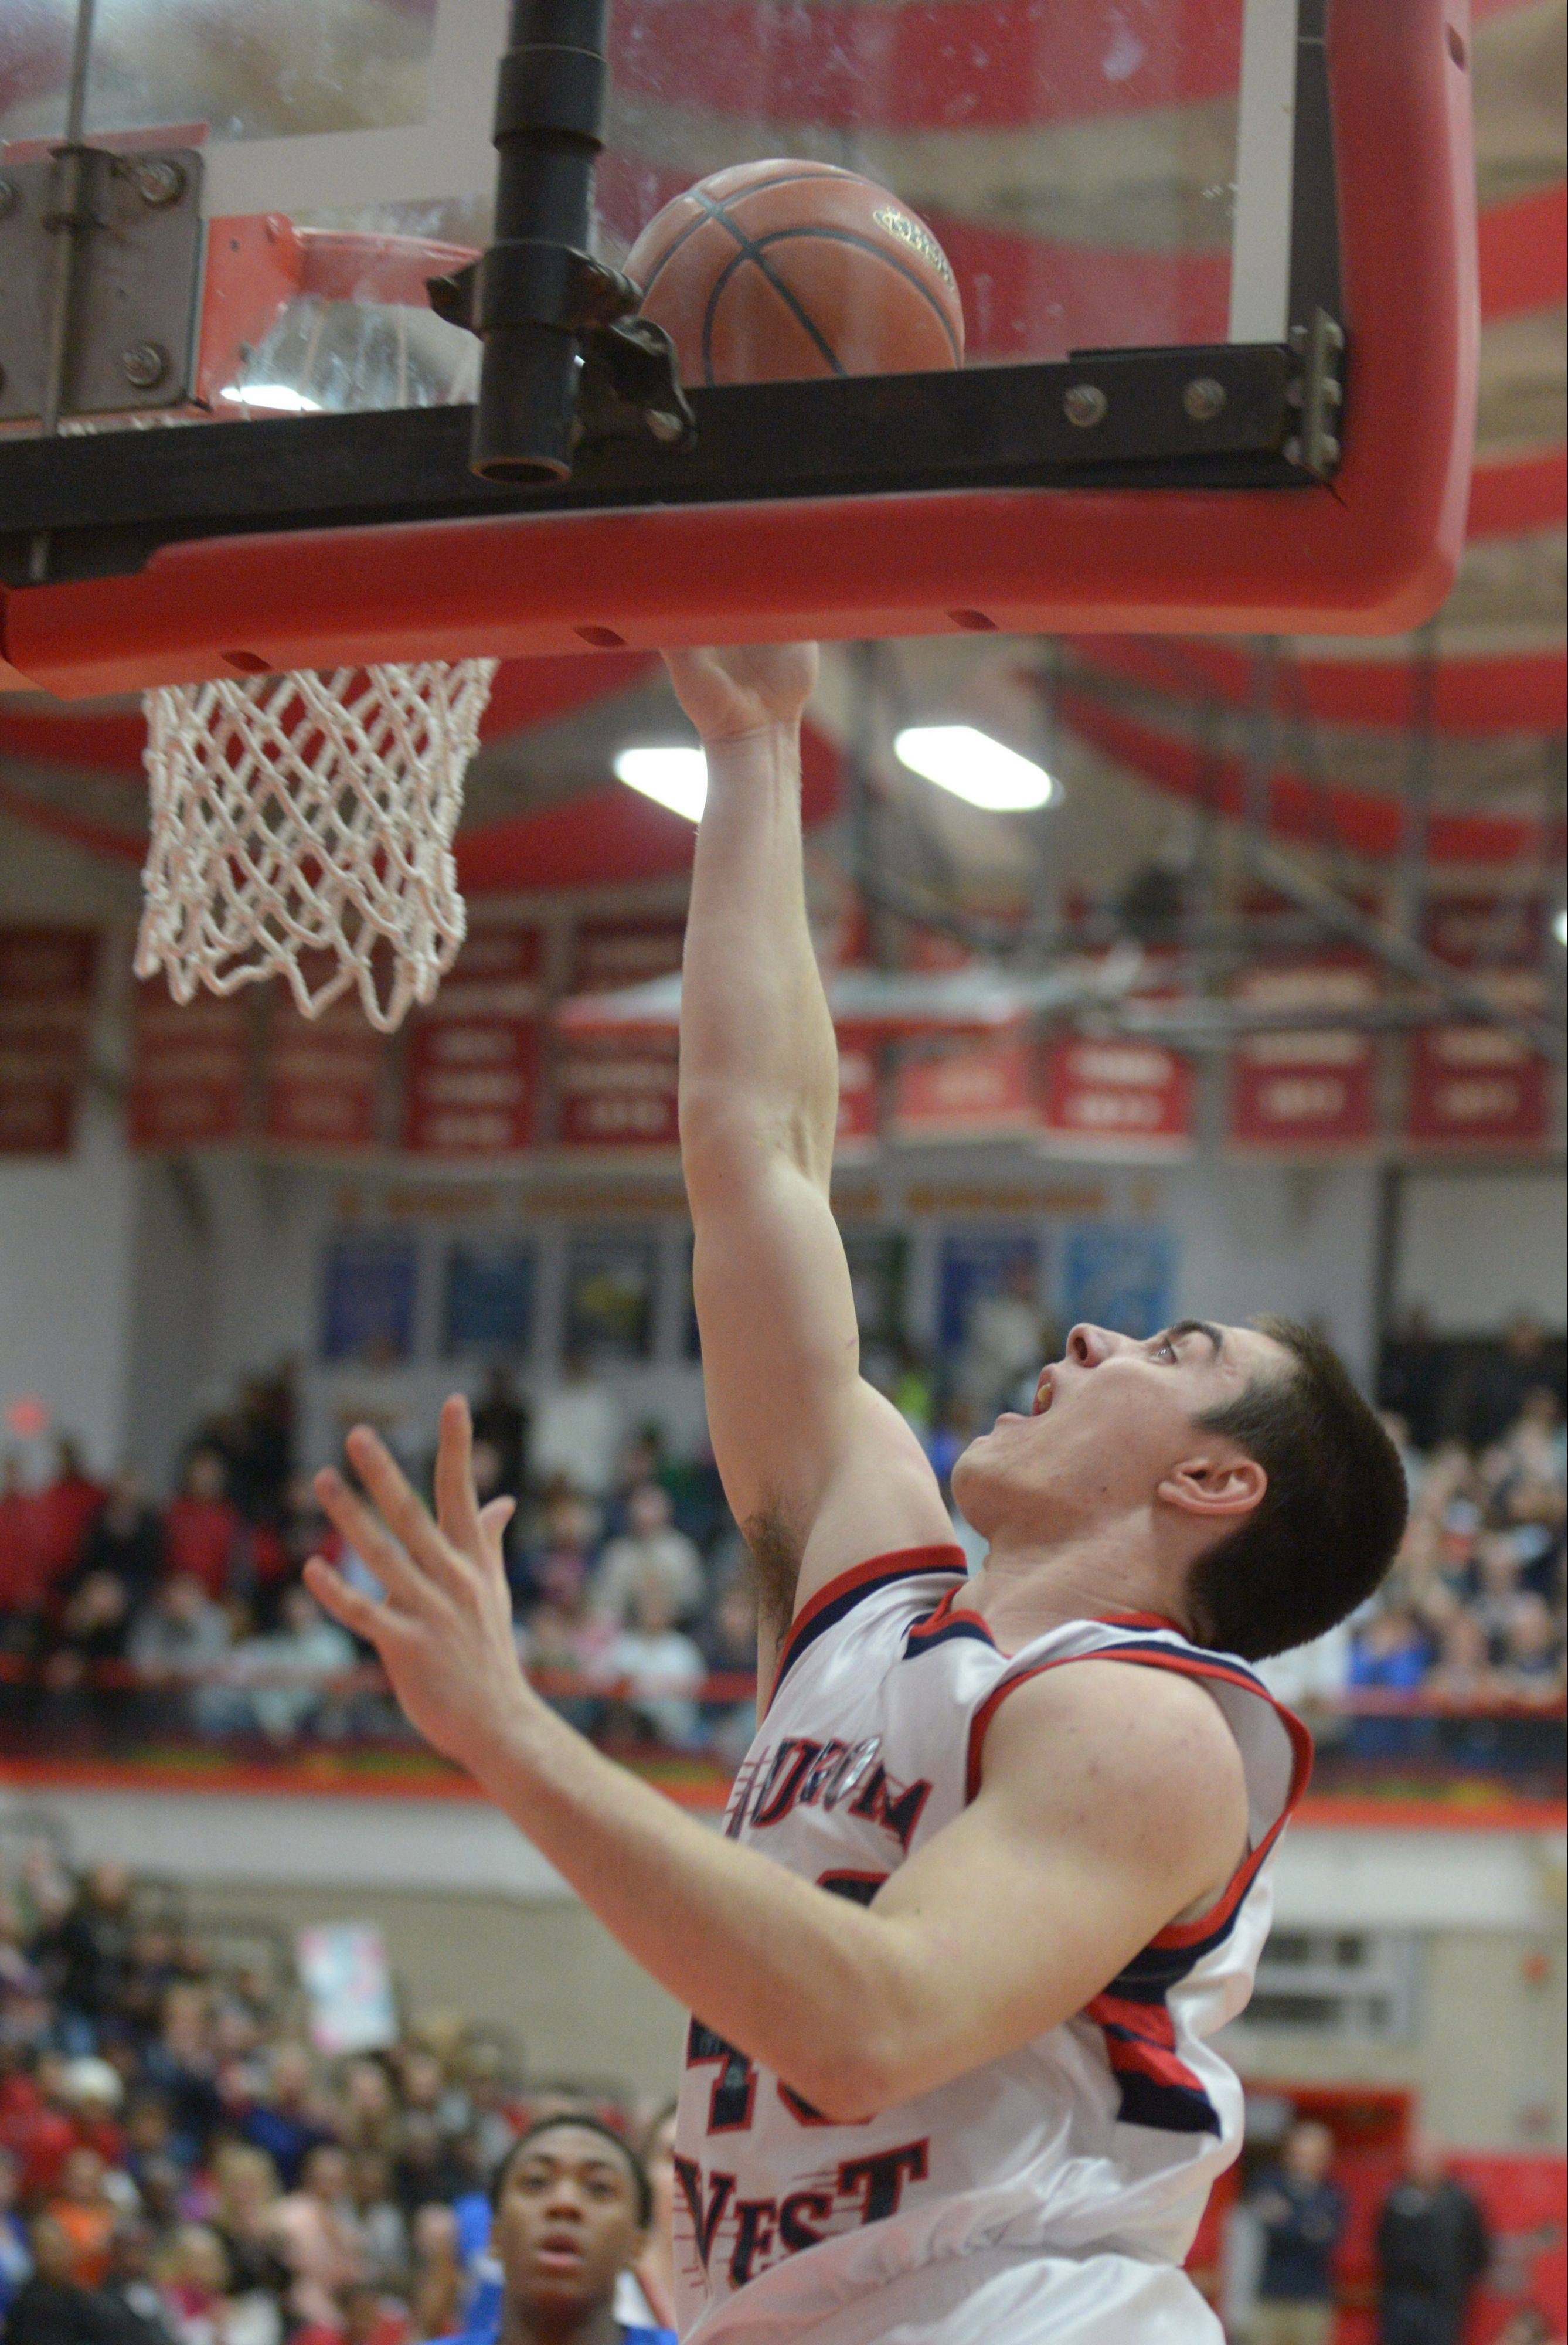 Spencer Thommas of West Aurora scored 9 points in the first quarter.